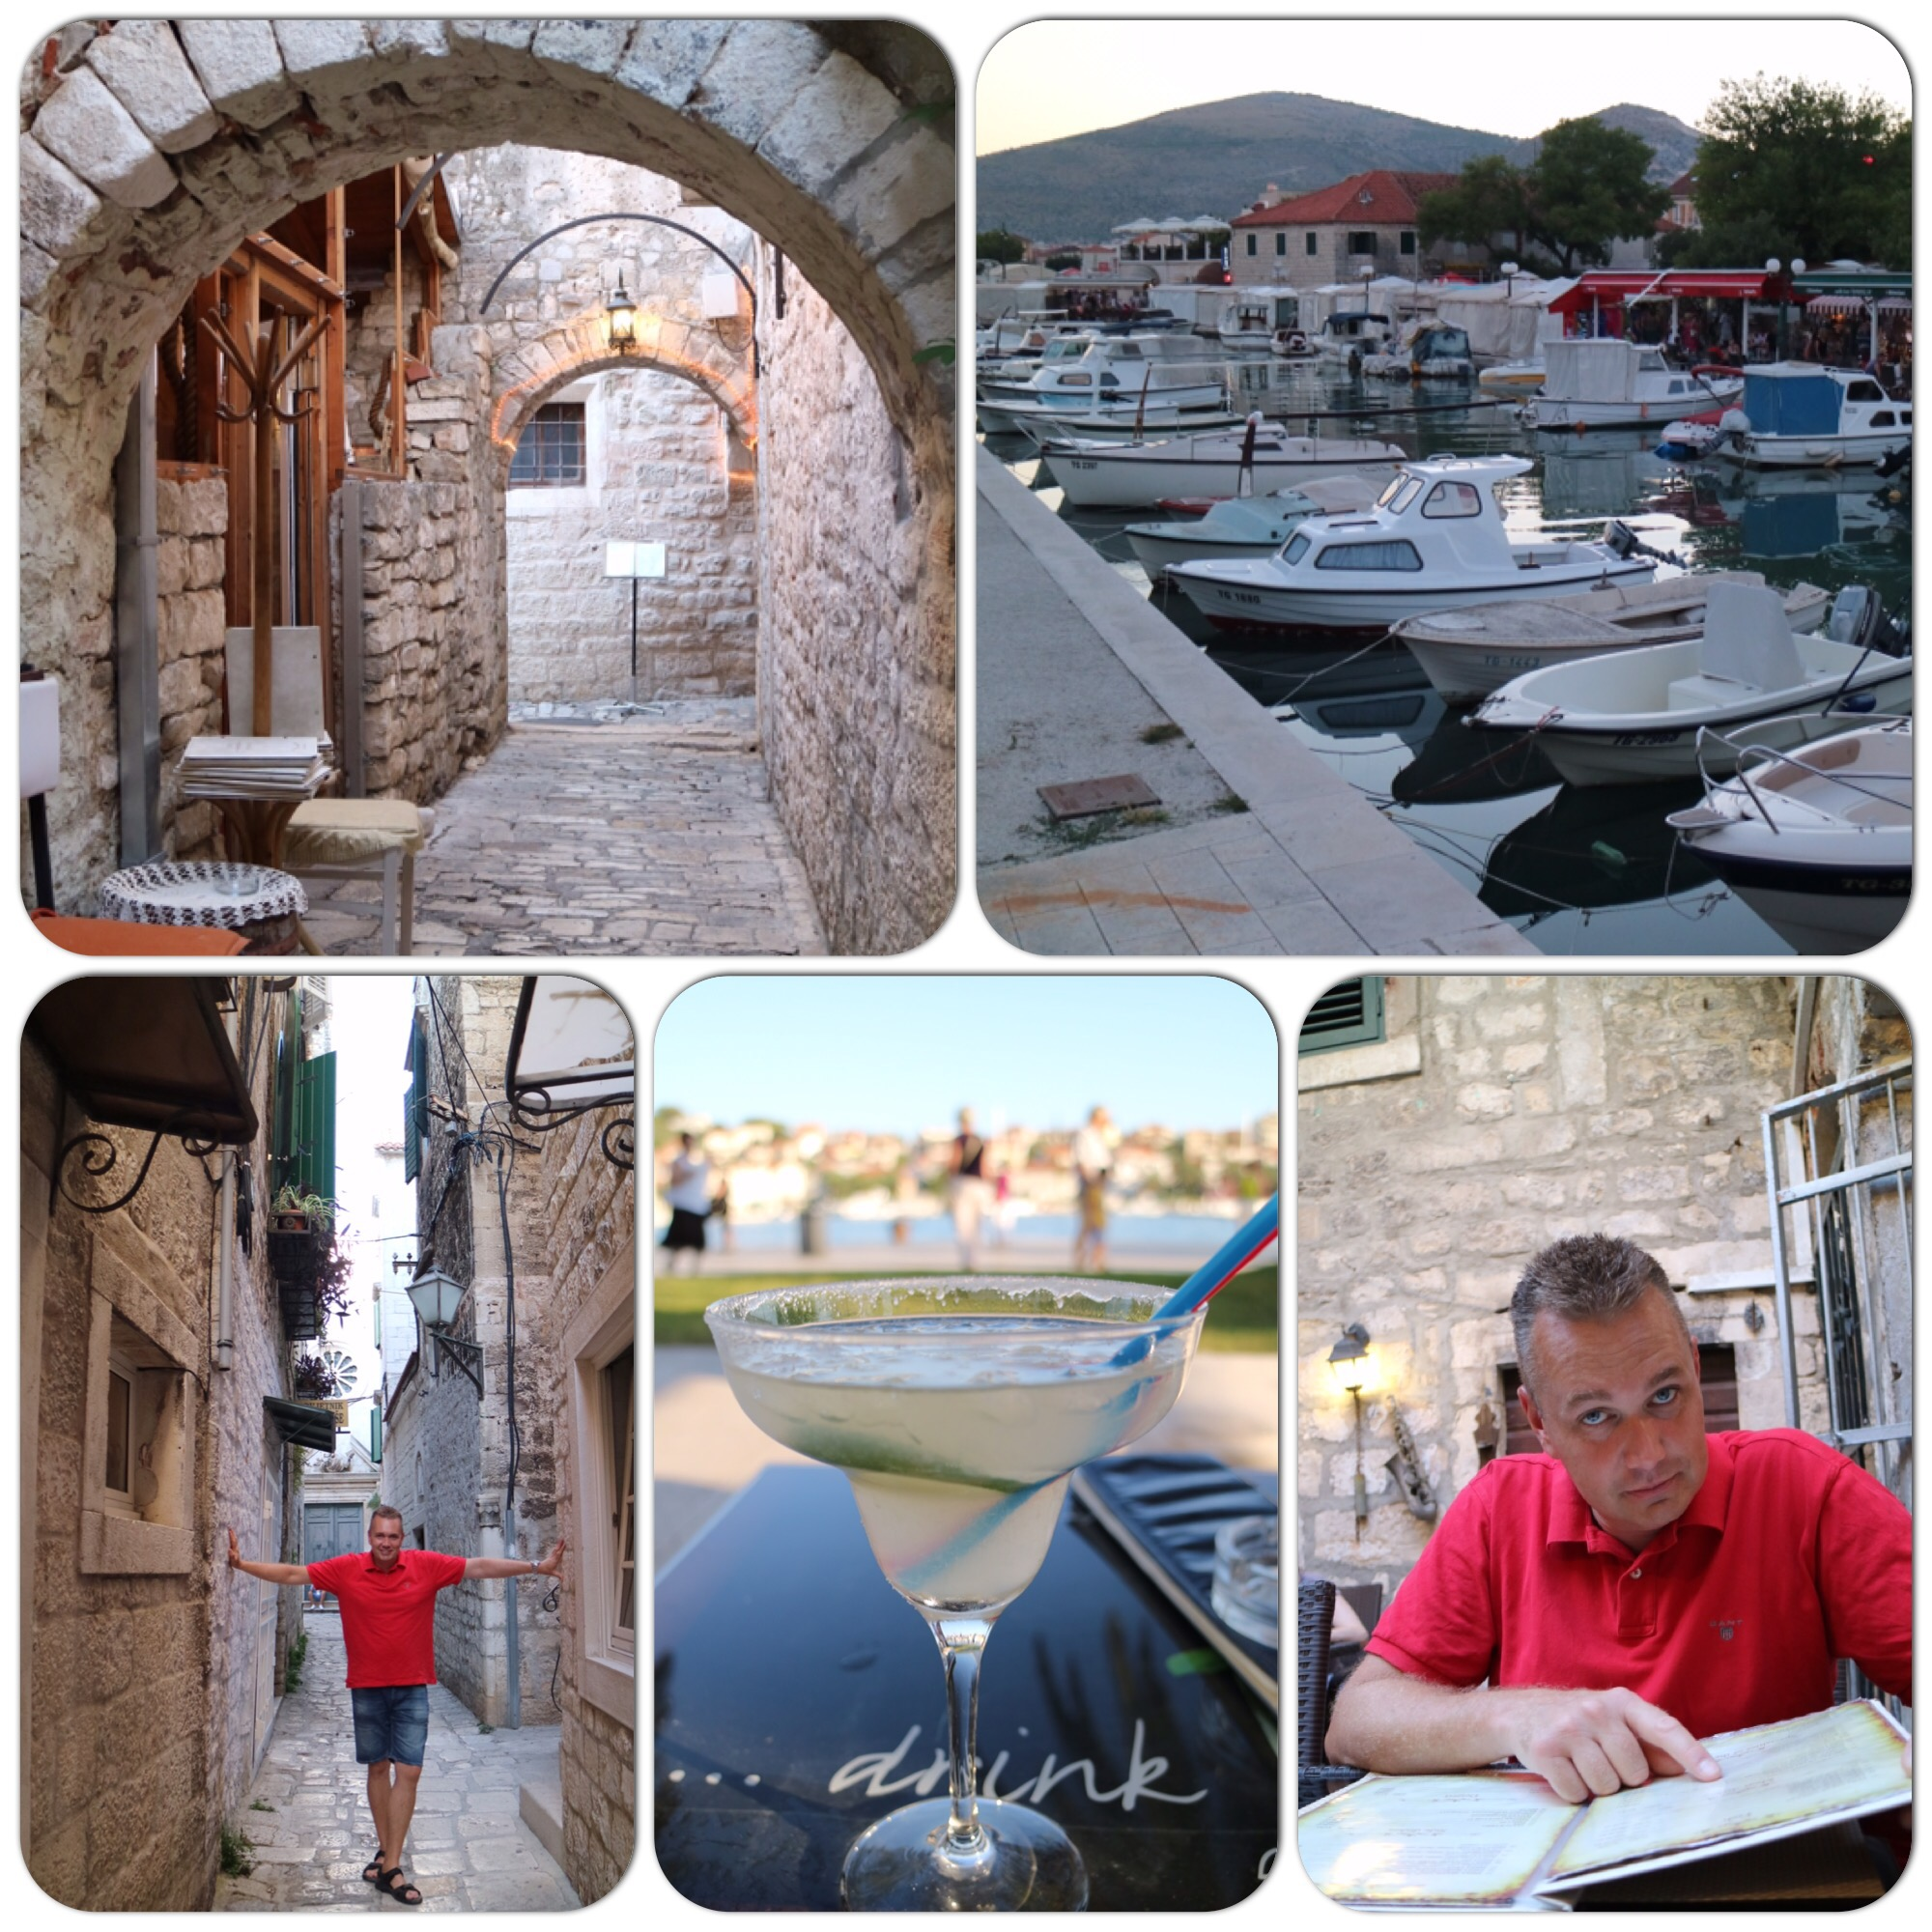 trogir guys Hotel concordia: the best plase to stay in trogir - see 118 traveler reviews italian to the guys behind us and i think german to a third group.